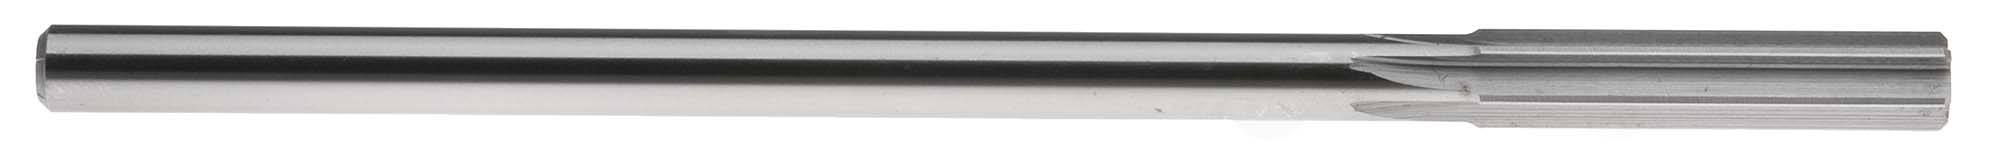 ".251"" Straight Shank Chucking Reamer, Straight Flute, High Speed Steel"